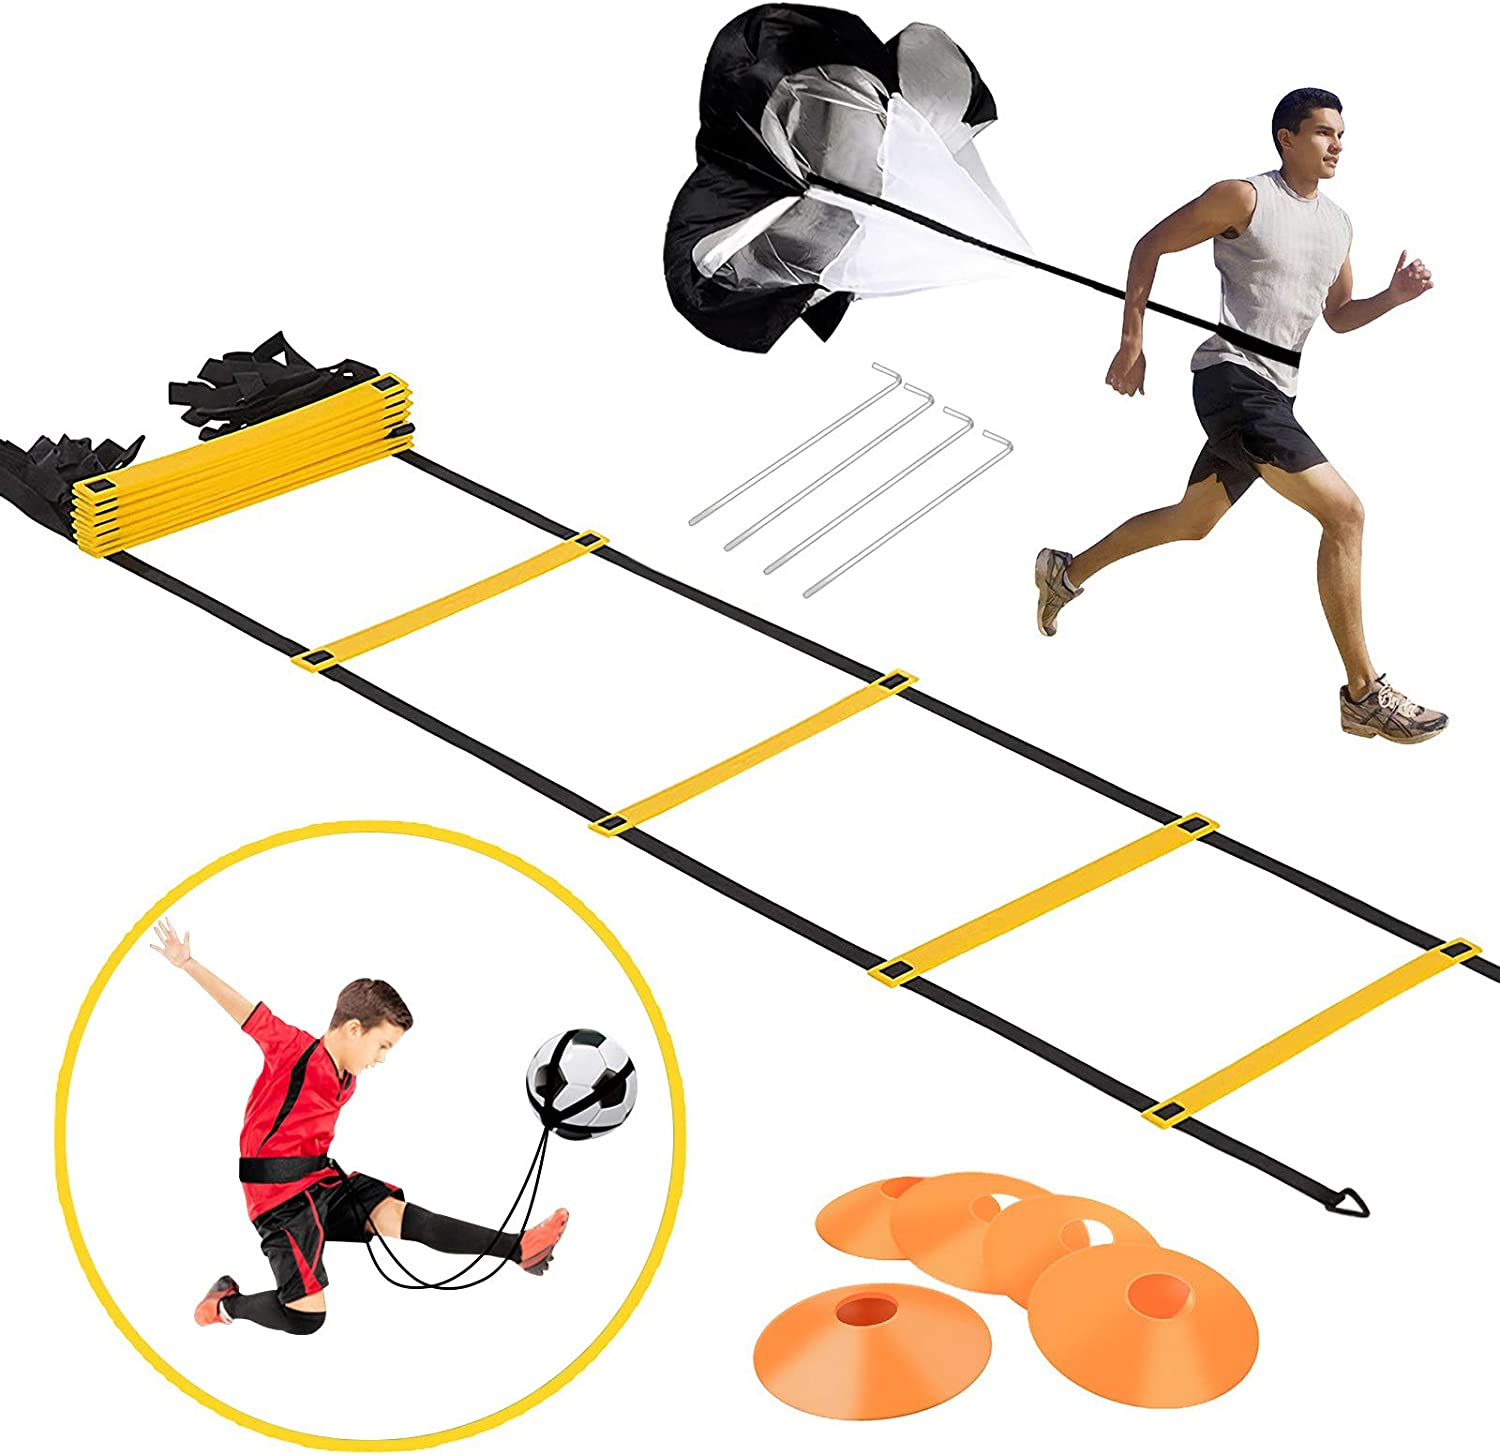 157x20inchs Explosive Power and Strength for Soccer Football Speed Agility Training with Carrying Bag Toonshare Pro Agility Ladder Training Equipment Set Speed Improves Coordination